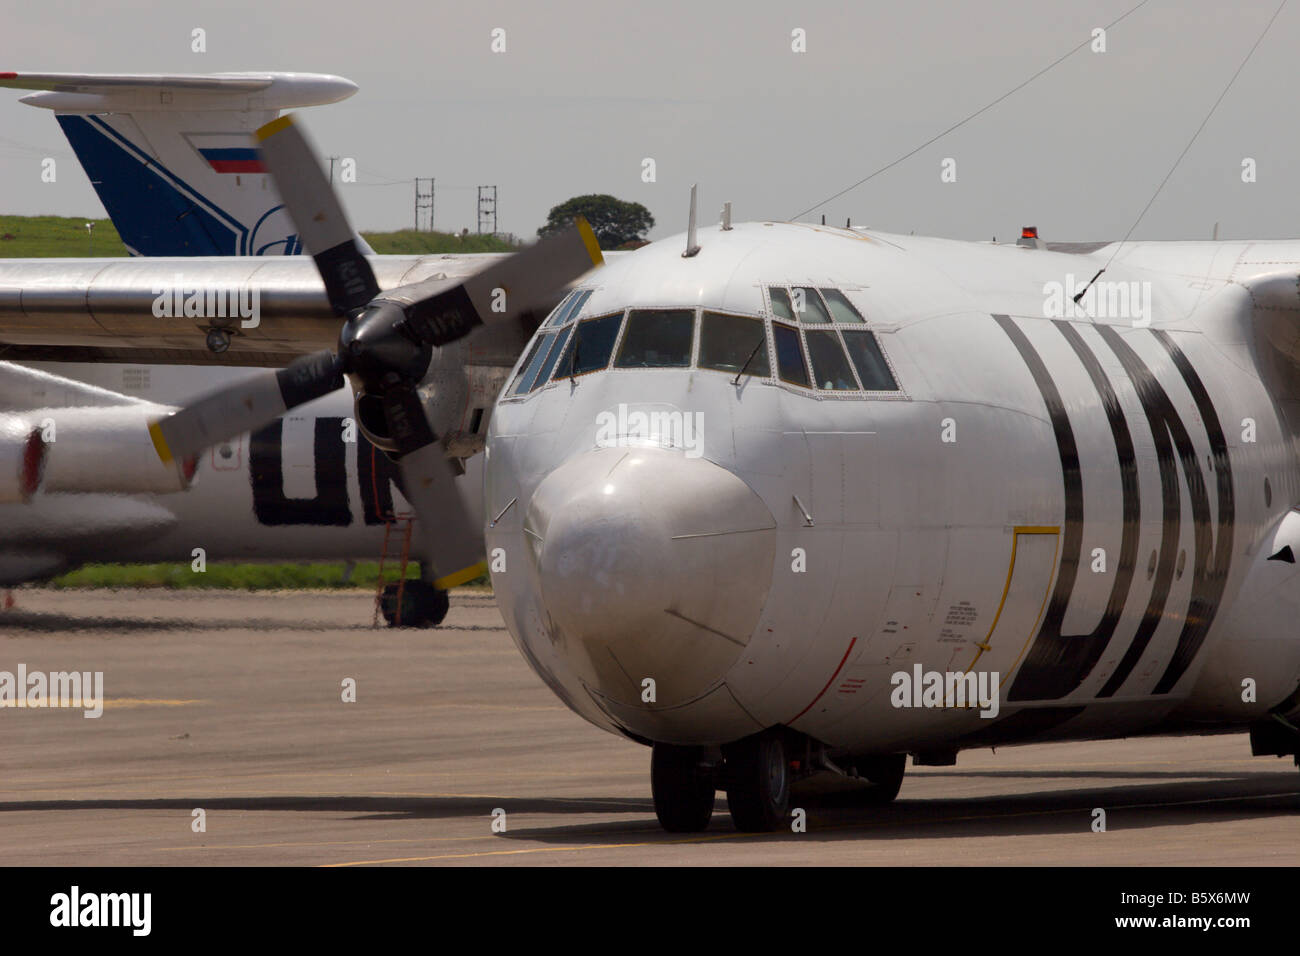 UN united nations aircraft hercules turboprop africa relief support airlift - Stock Image